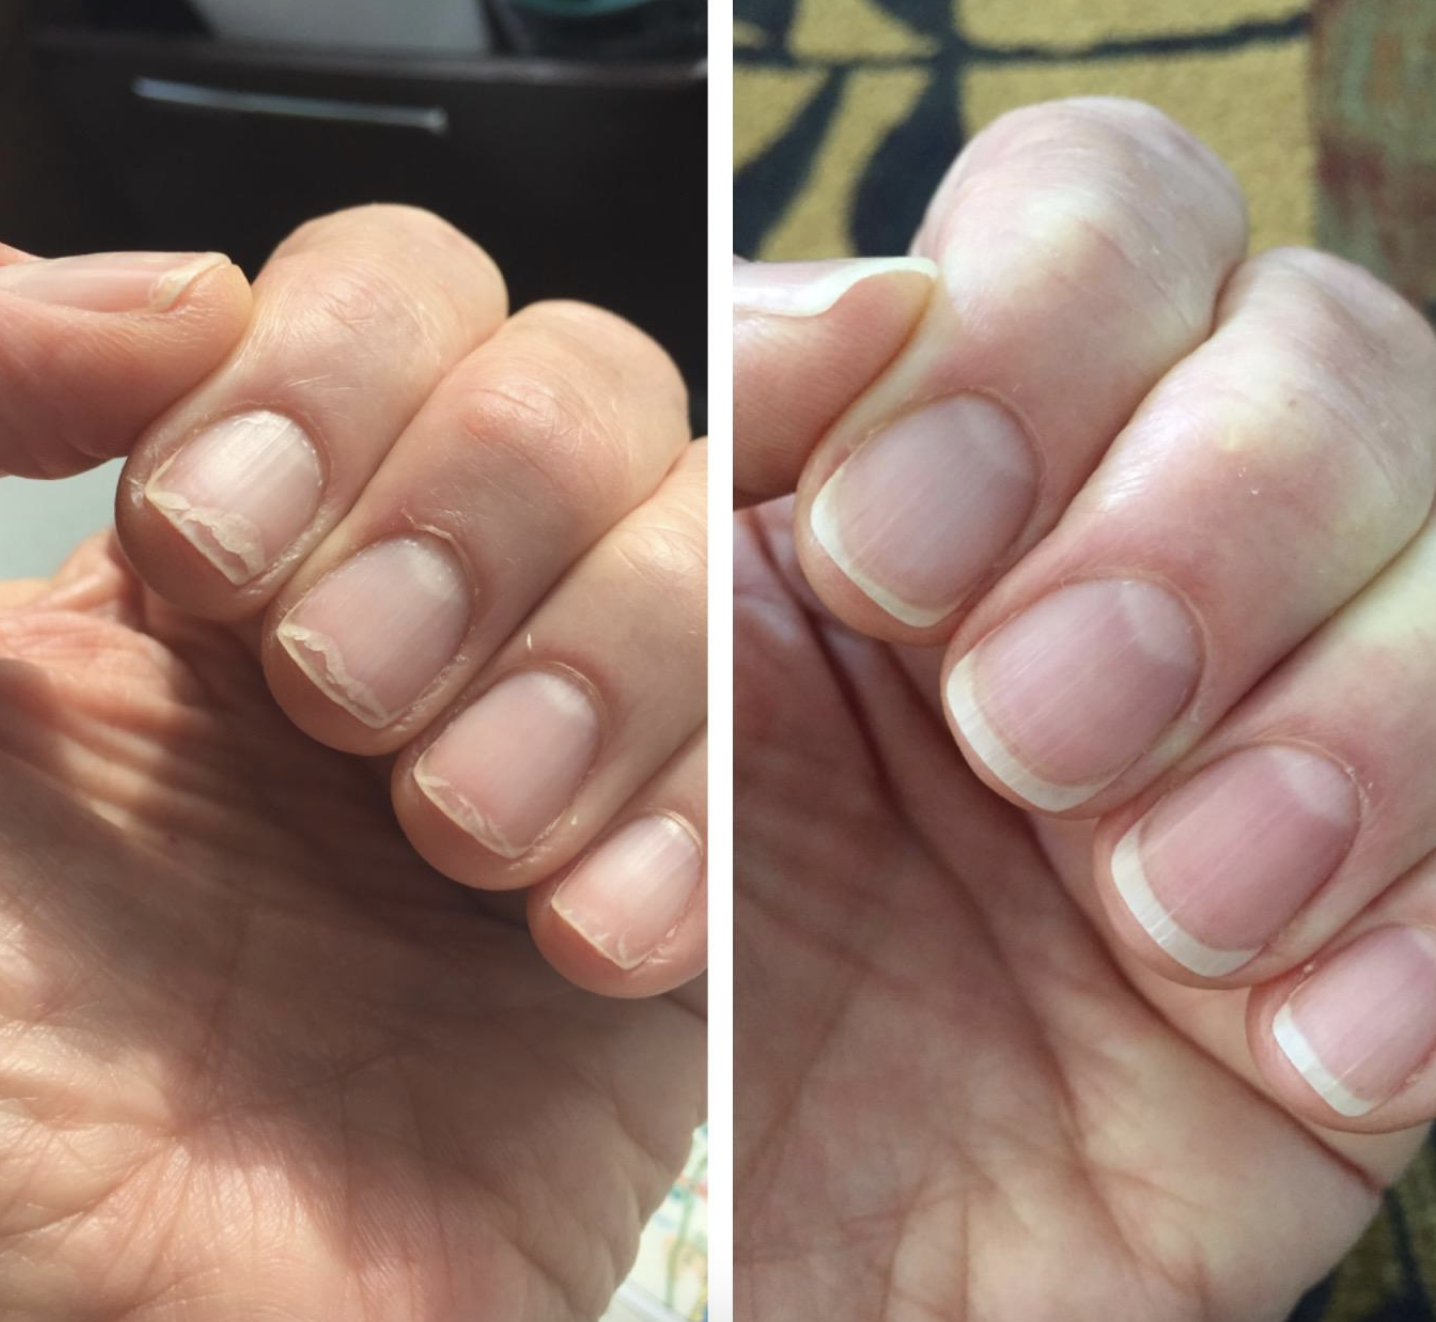 reviewer photo on left with brittle nails and on right, nails looking visibly longer and healthier